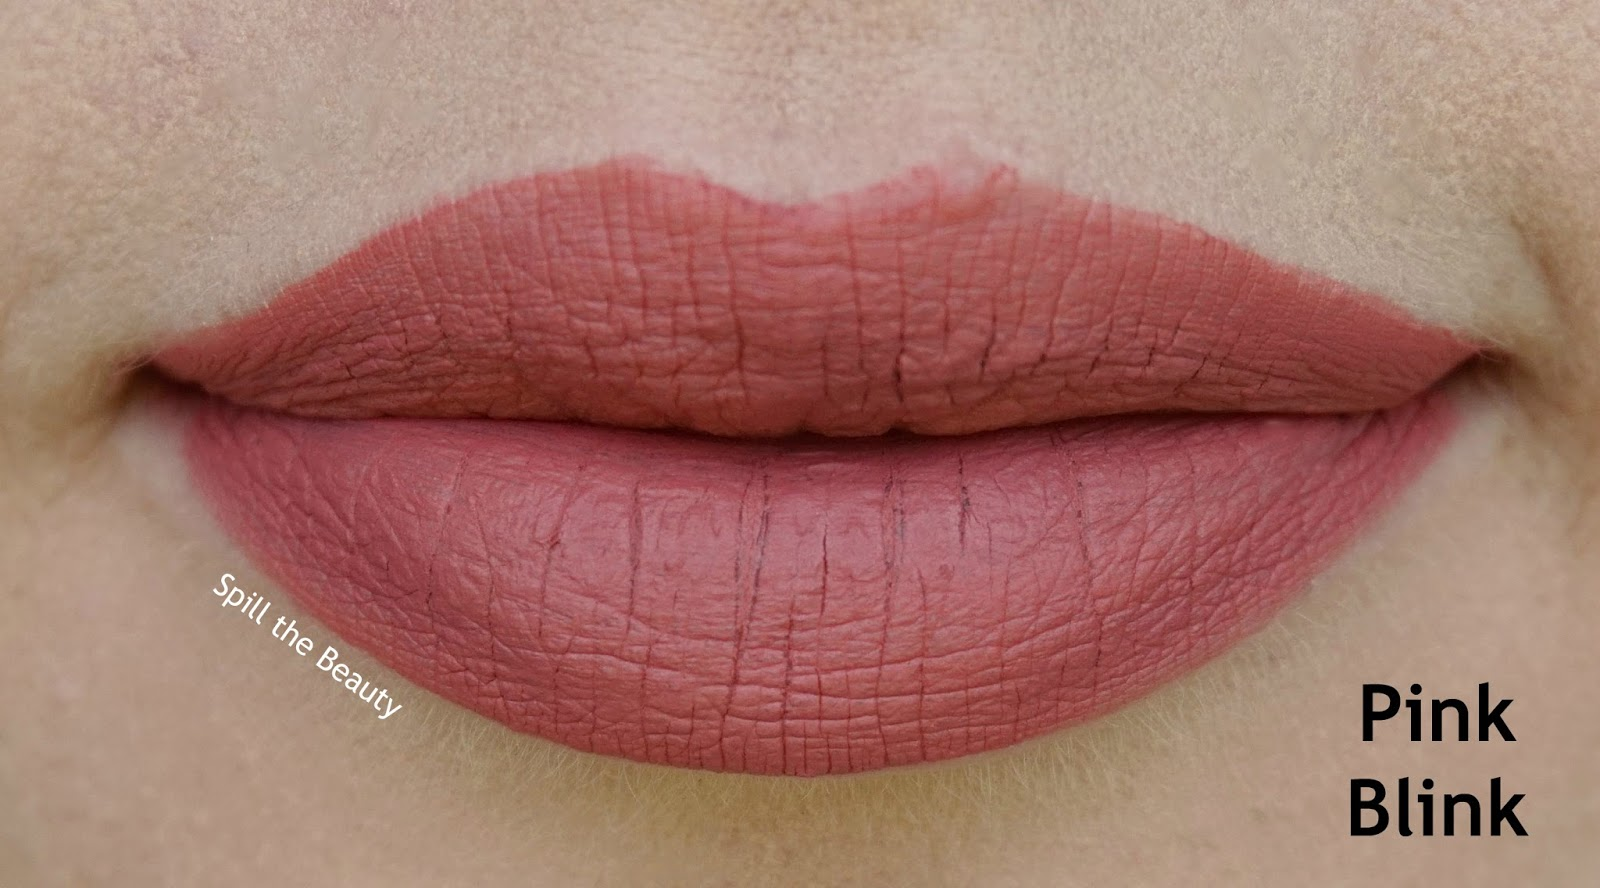 rimmel london stay matte liquid lip color review swatches 200 pink blink